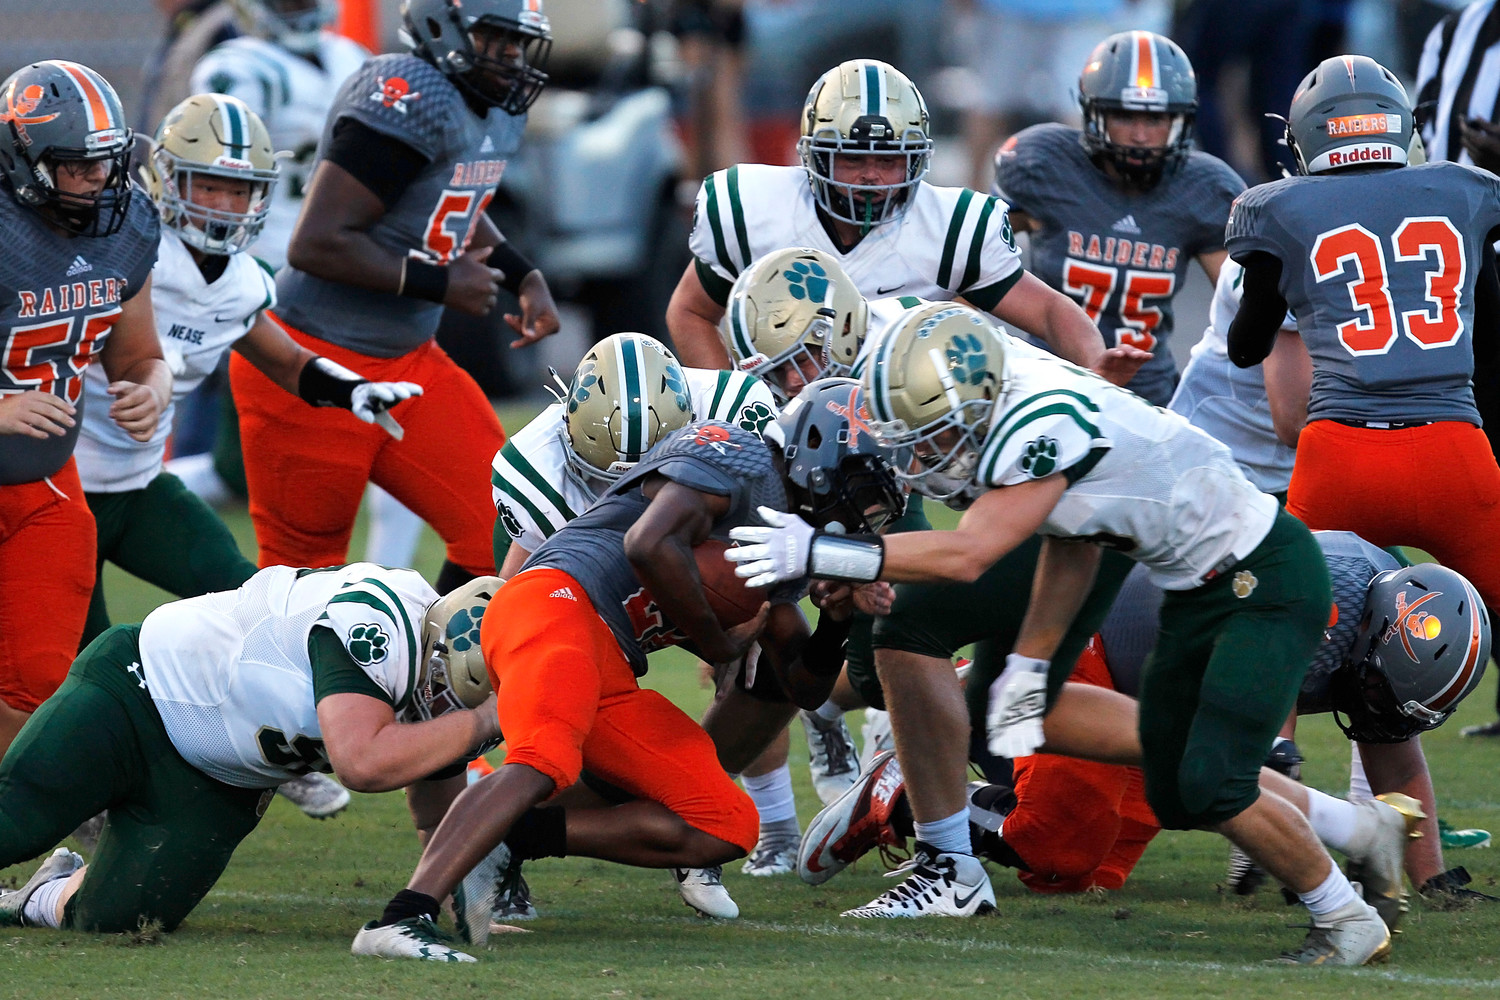 The Nease defense combines to bring down the Orange Park ball carrier.